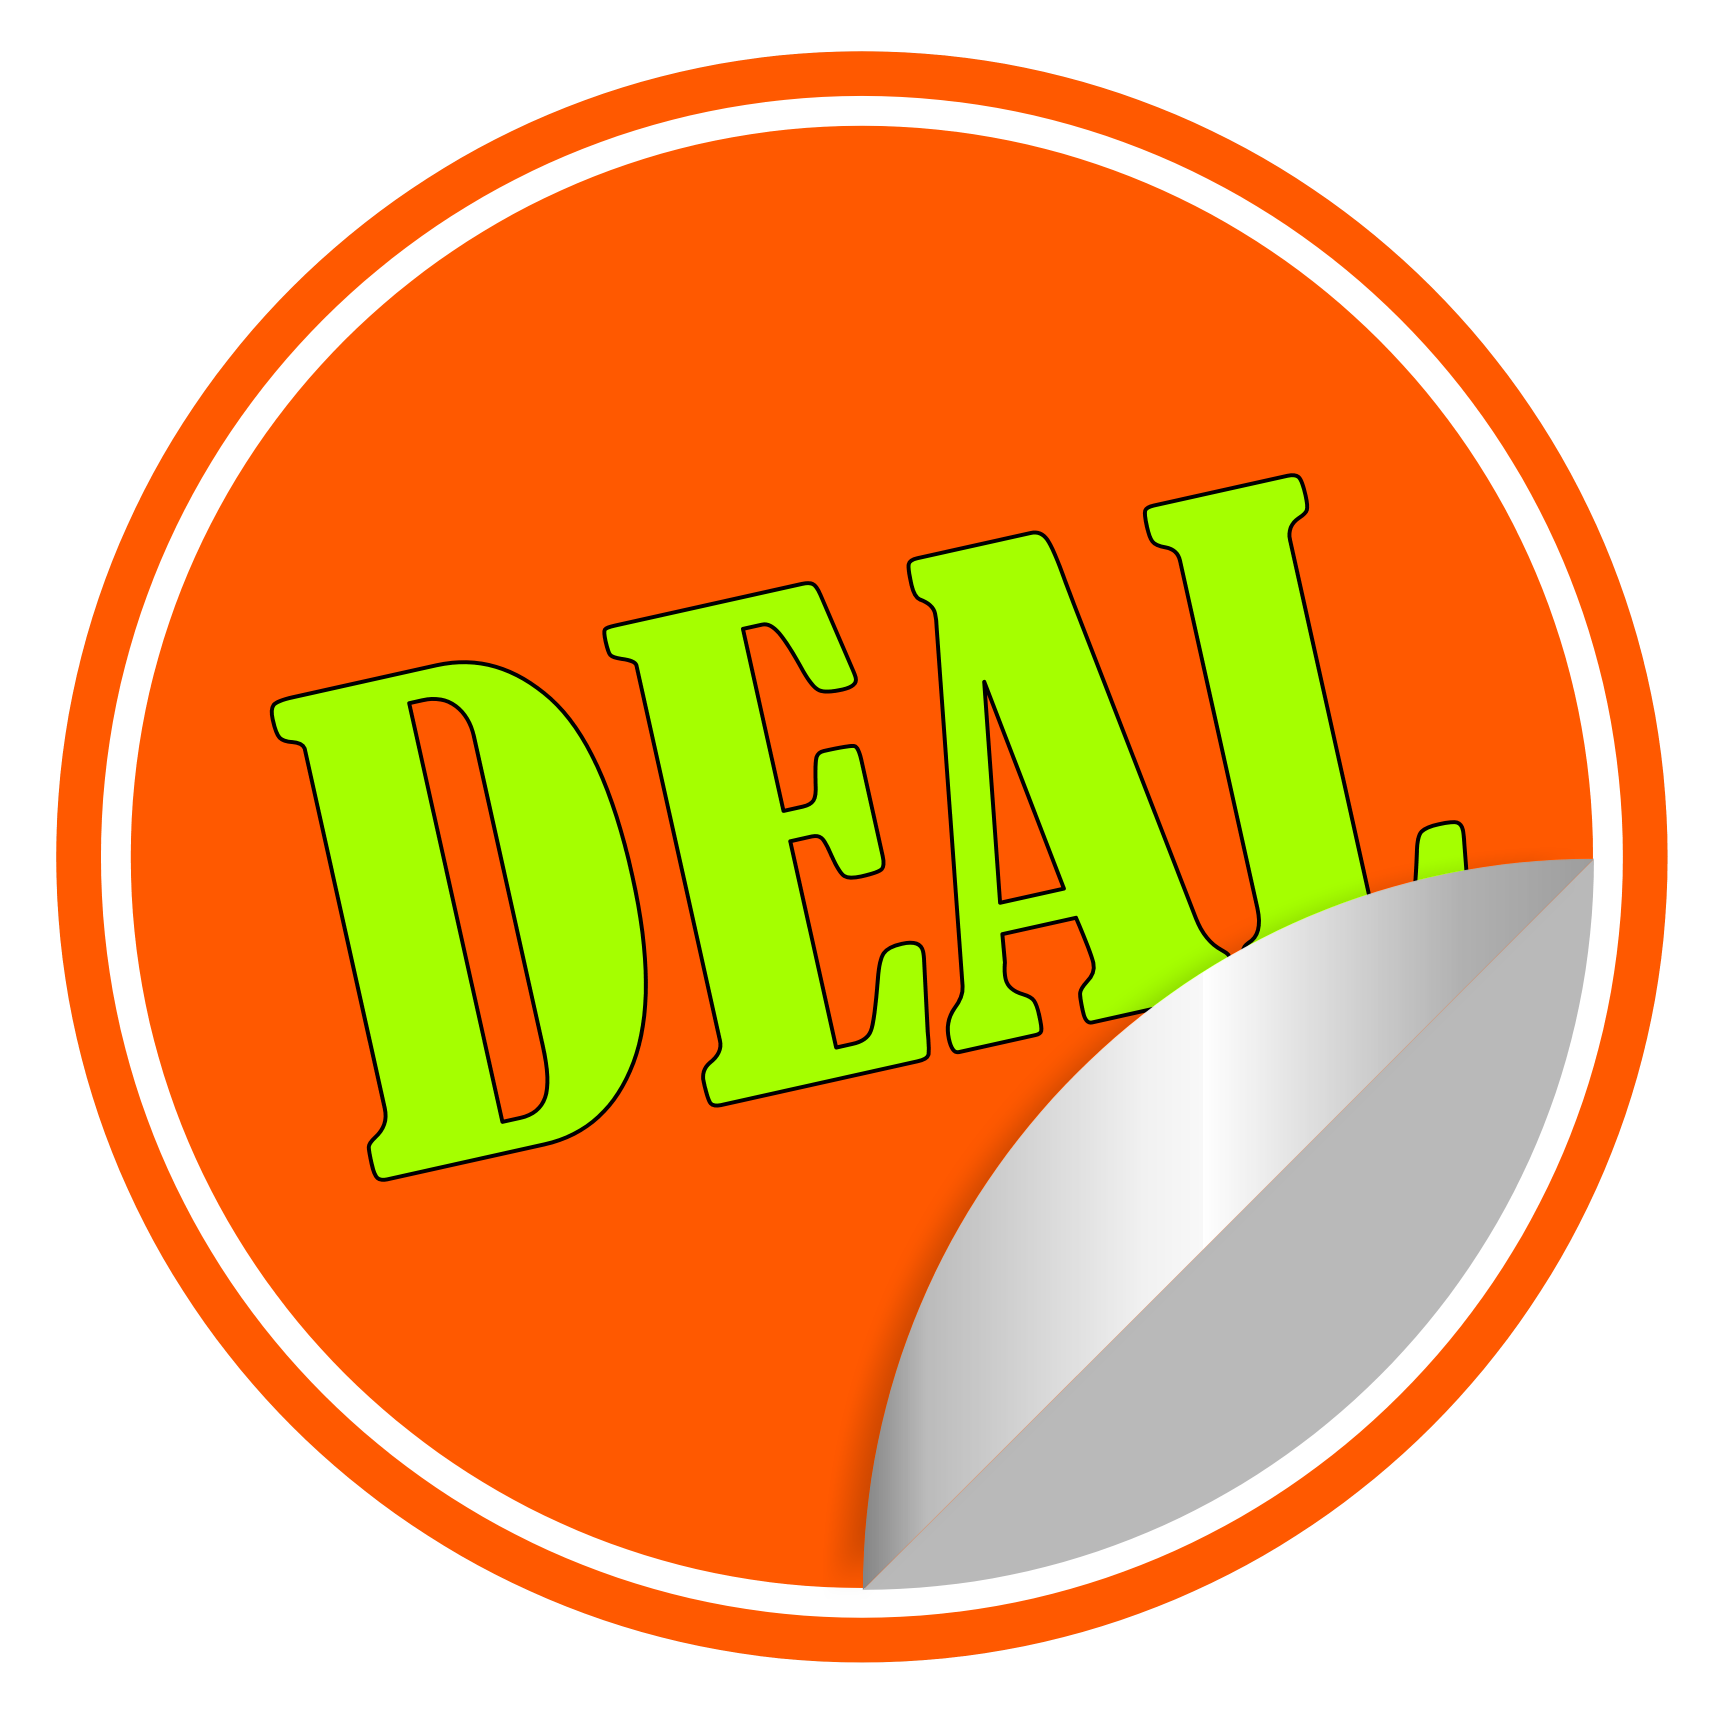 Deal Sticker Vector PNG Transparent Image - Discount PNG